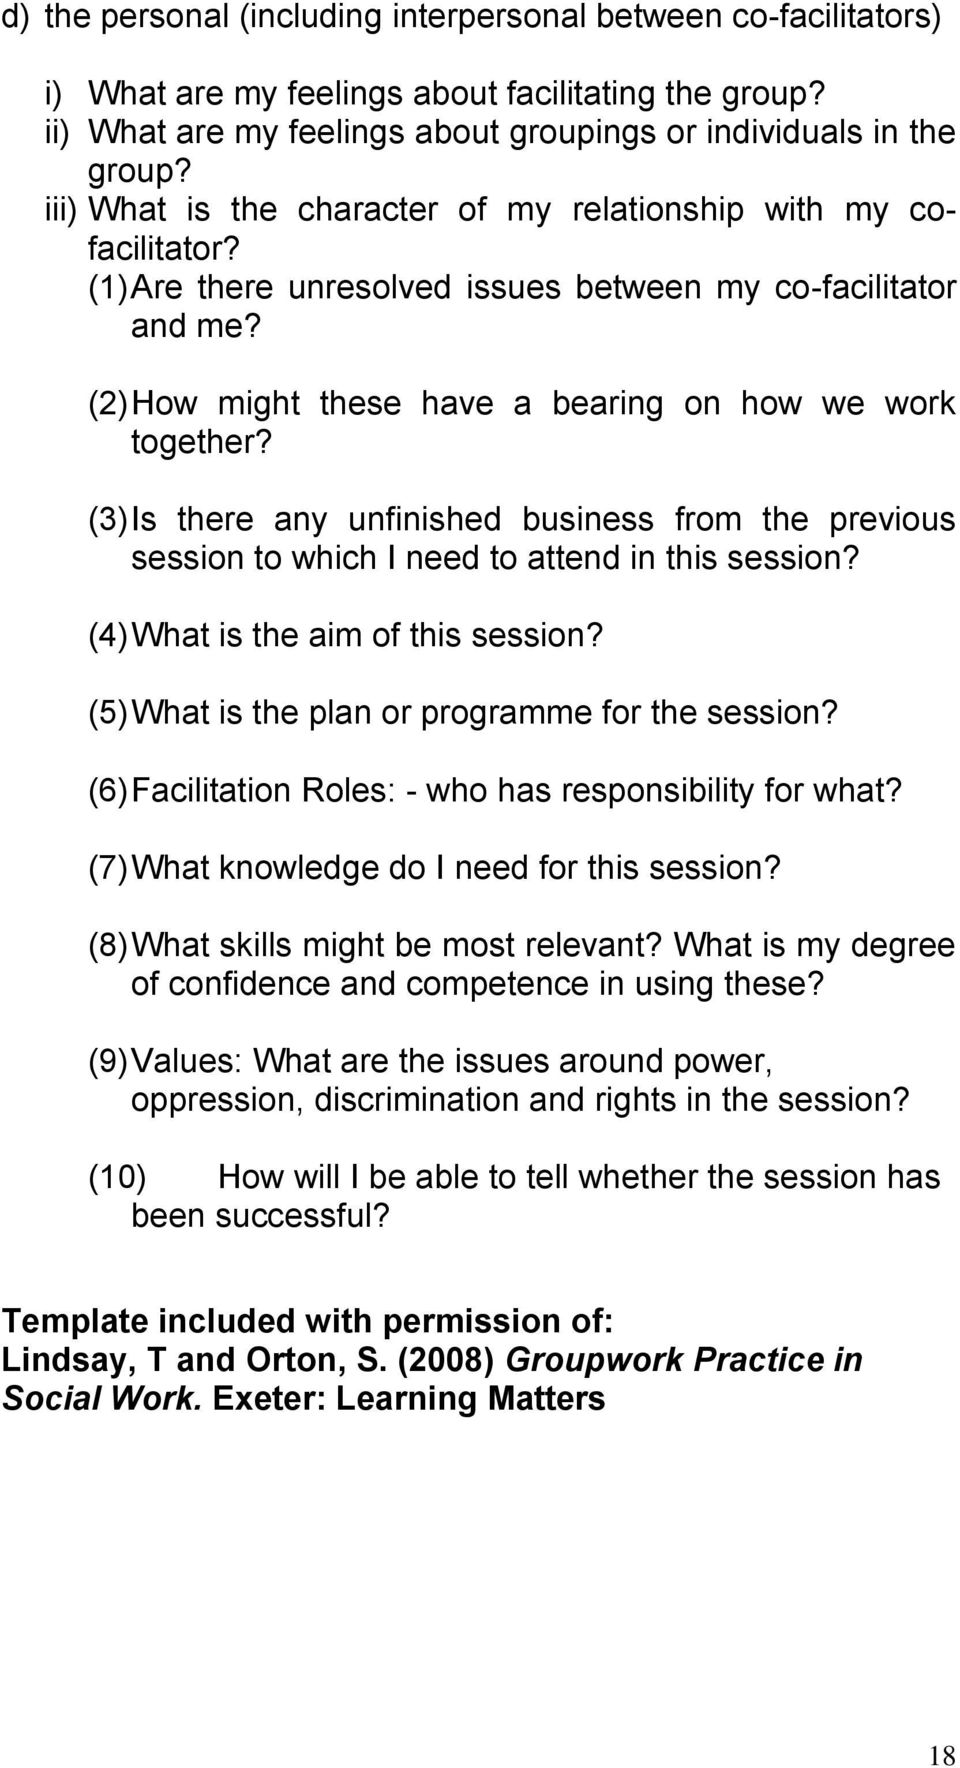 (3) Is there any unfinished business from the previous session to which I need to attend in this session? (4) What is the aim of this session? (5) What is the plan or programme for the session?